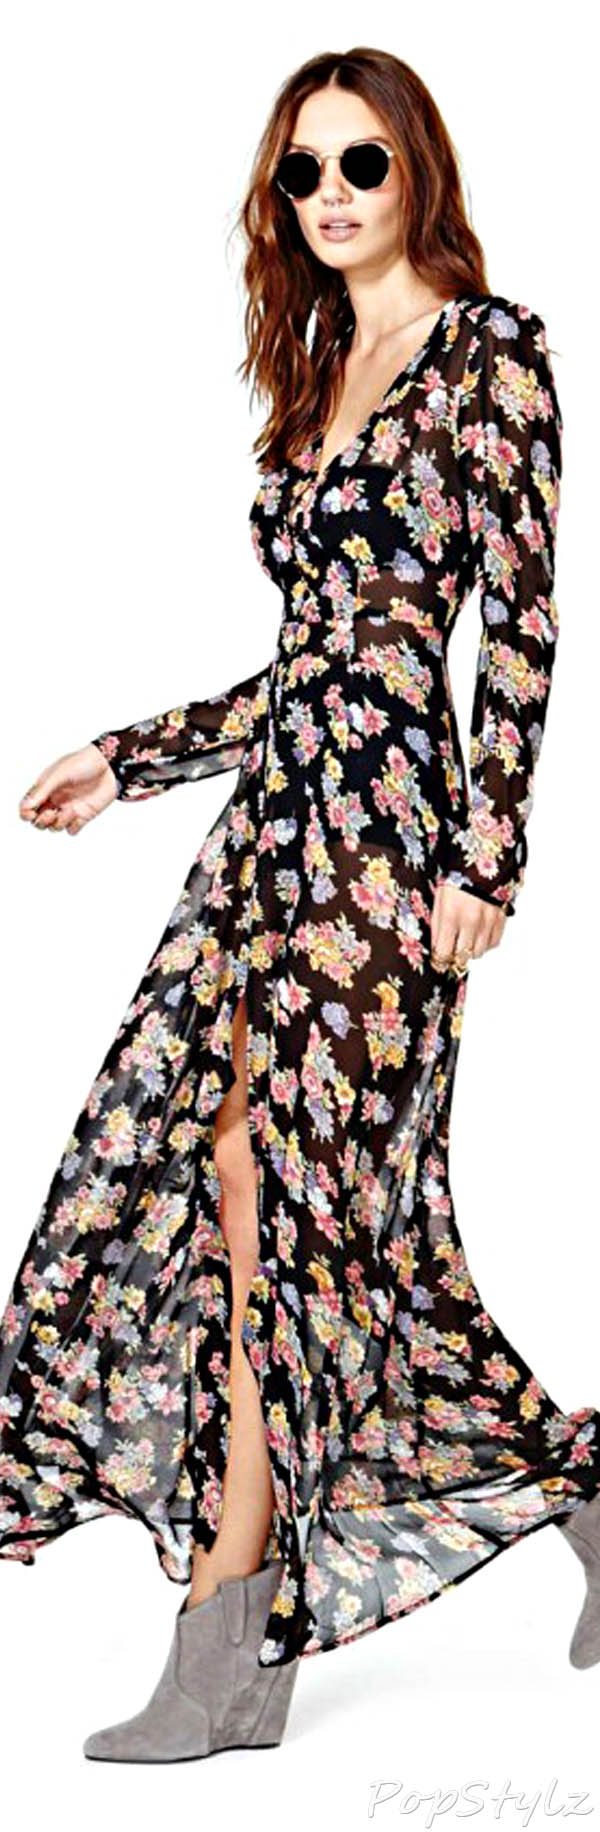 Sheinside Floral Split Maxi Dress